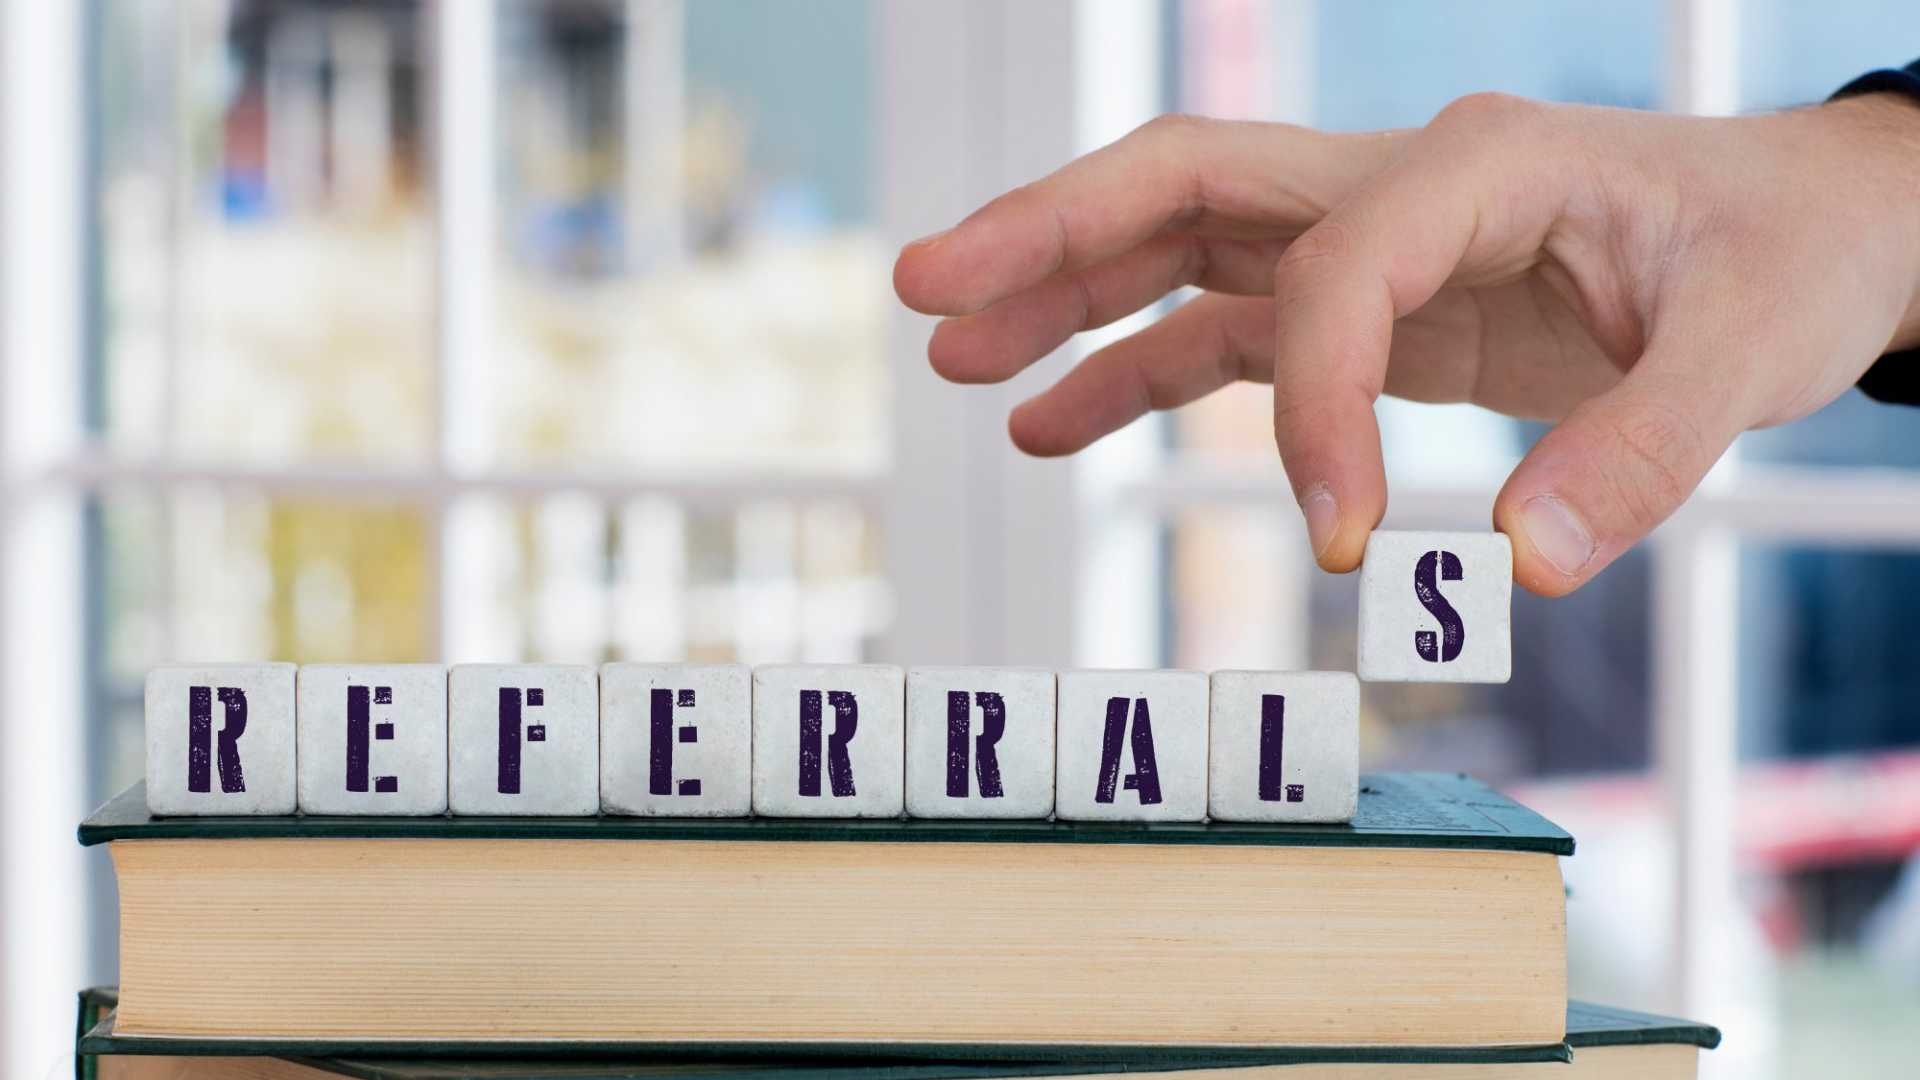 How to Ask for Referrals that Help Grow Your Business